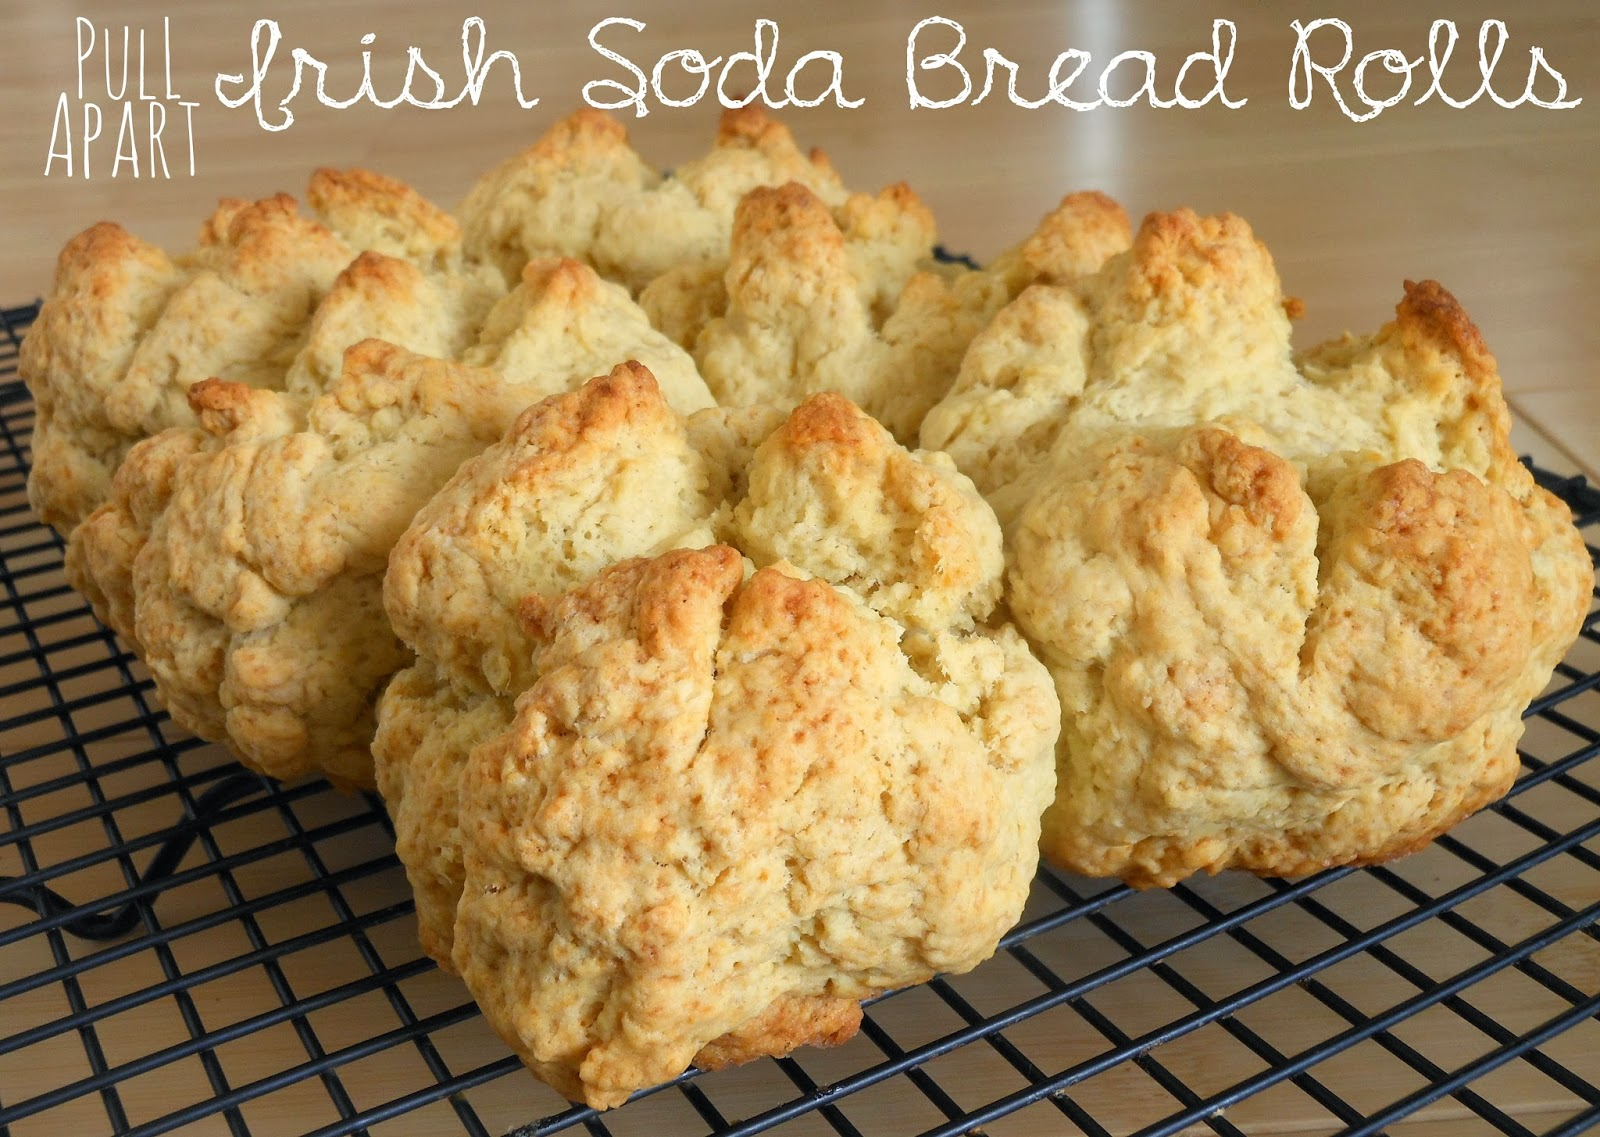 ... With My Loves - Adventures in Homemaking: Pull-Apart Soda Bread Rolls